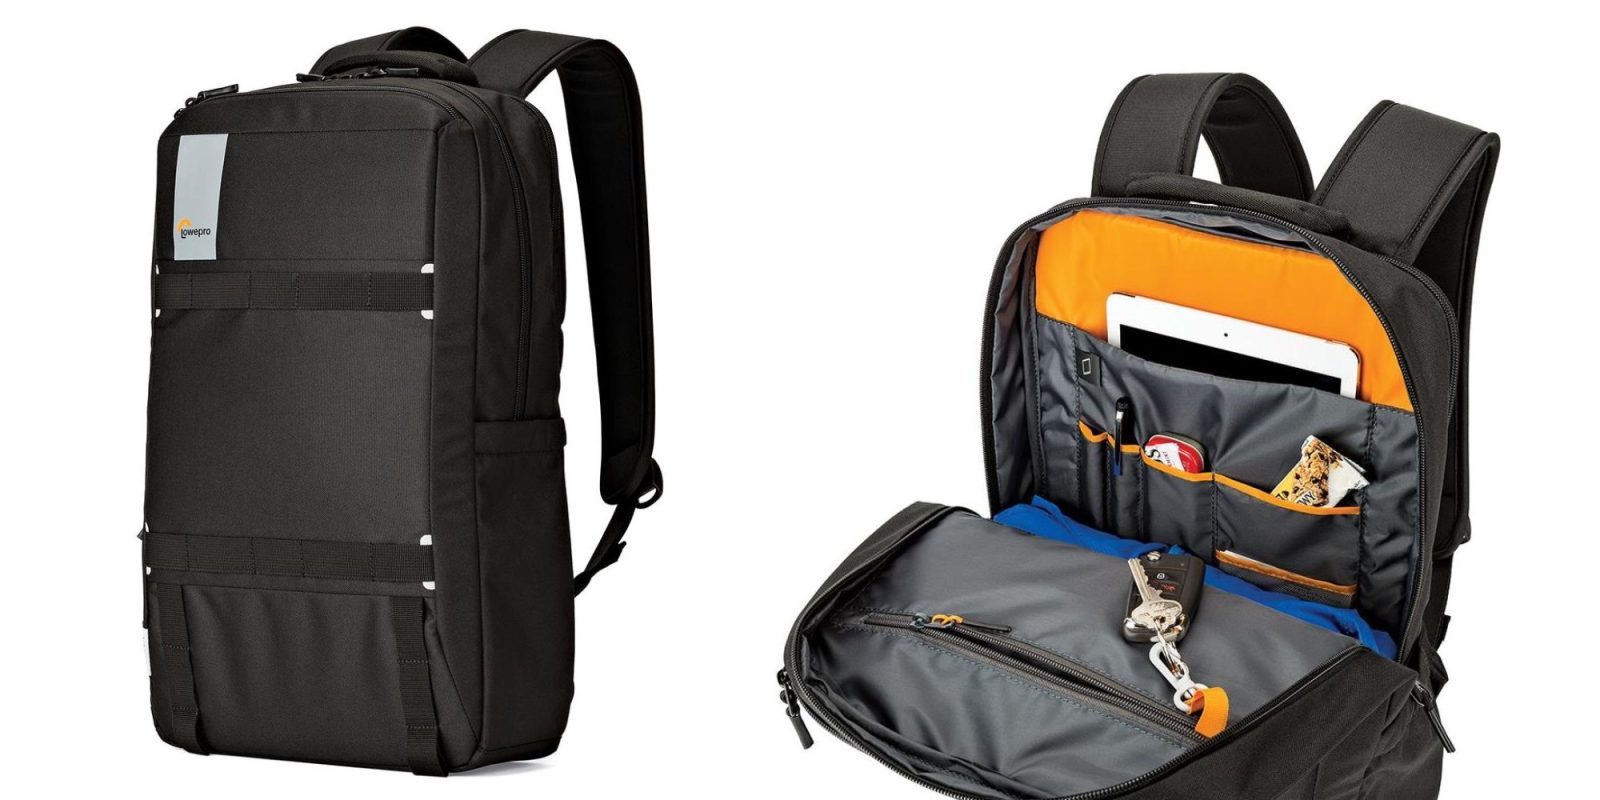 Lowepro's Urbex BP 20L Backpack has room for a 15-inch MacBook: $30 ($40 off)